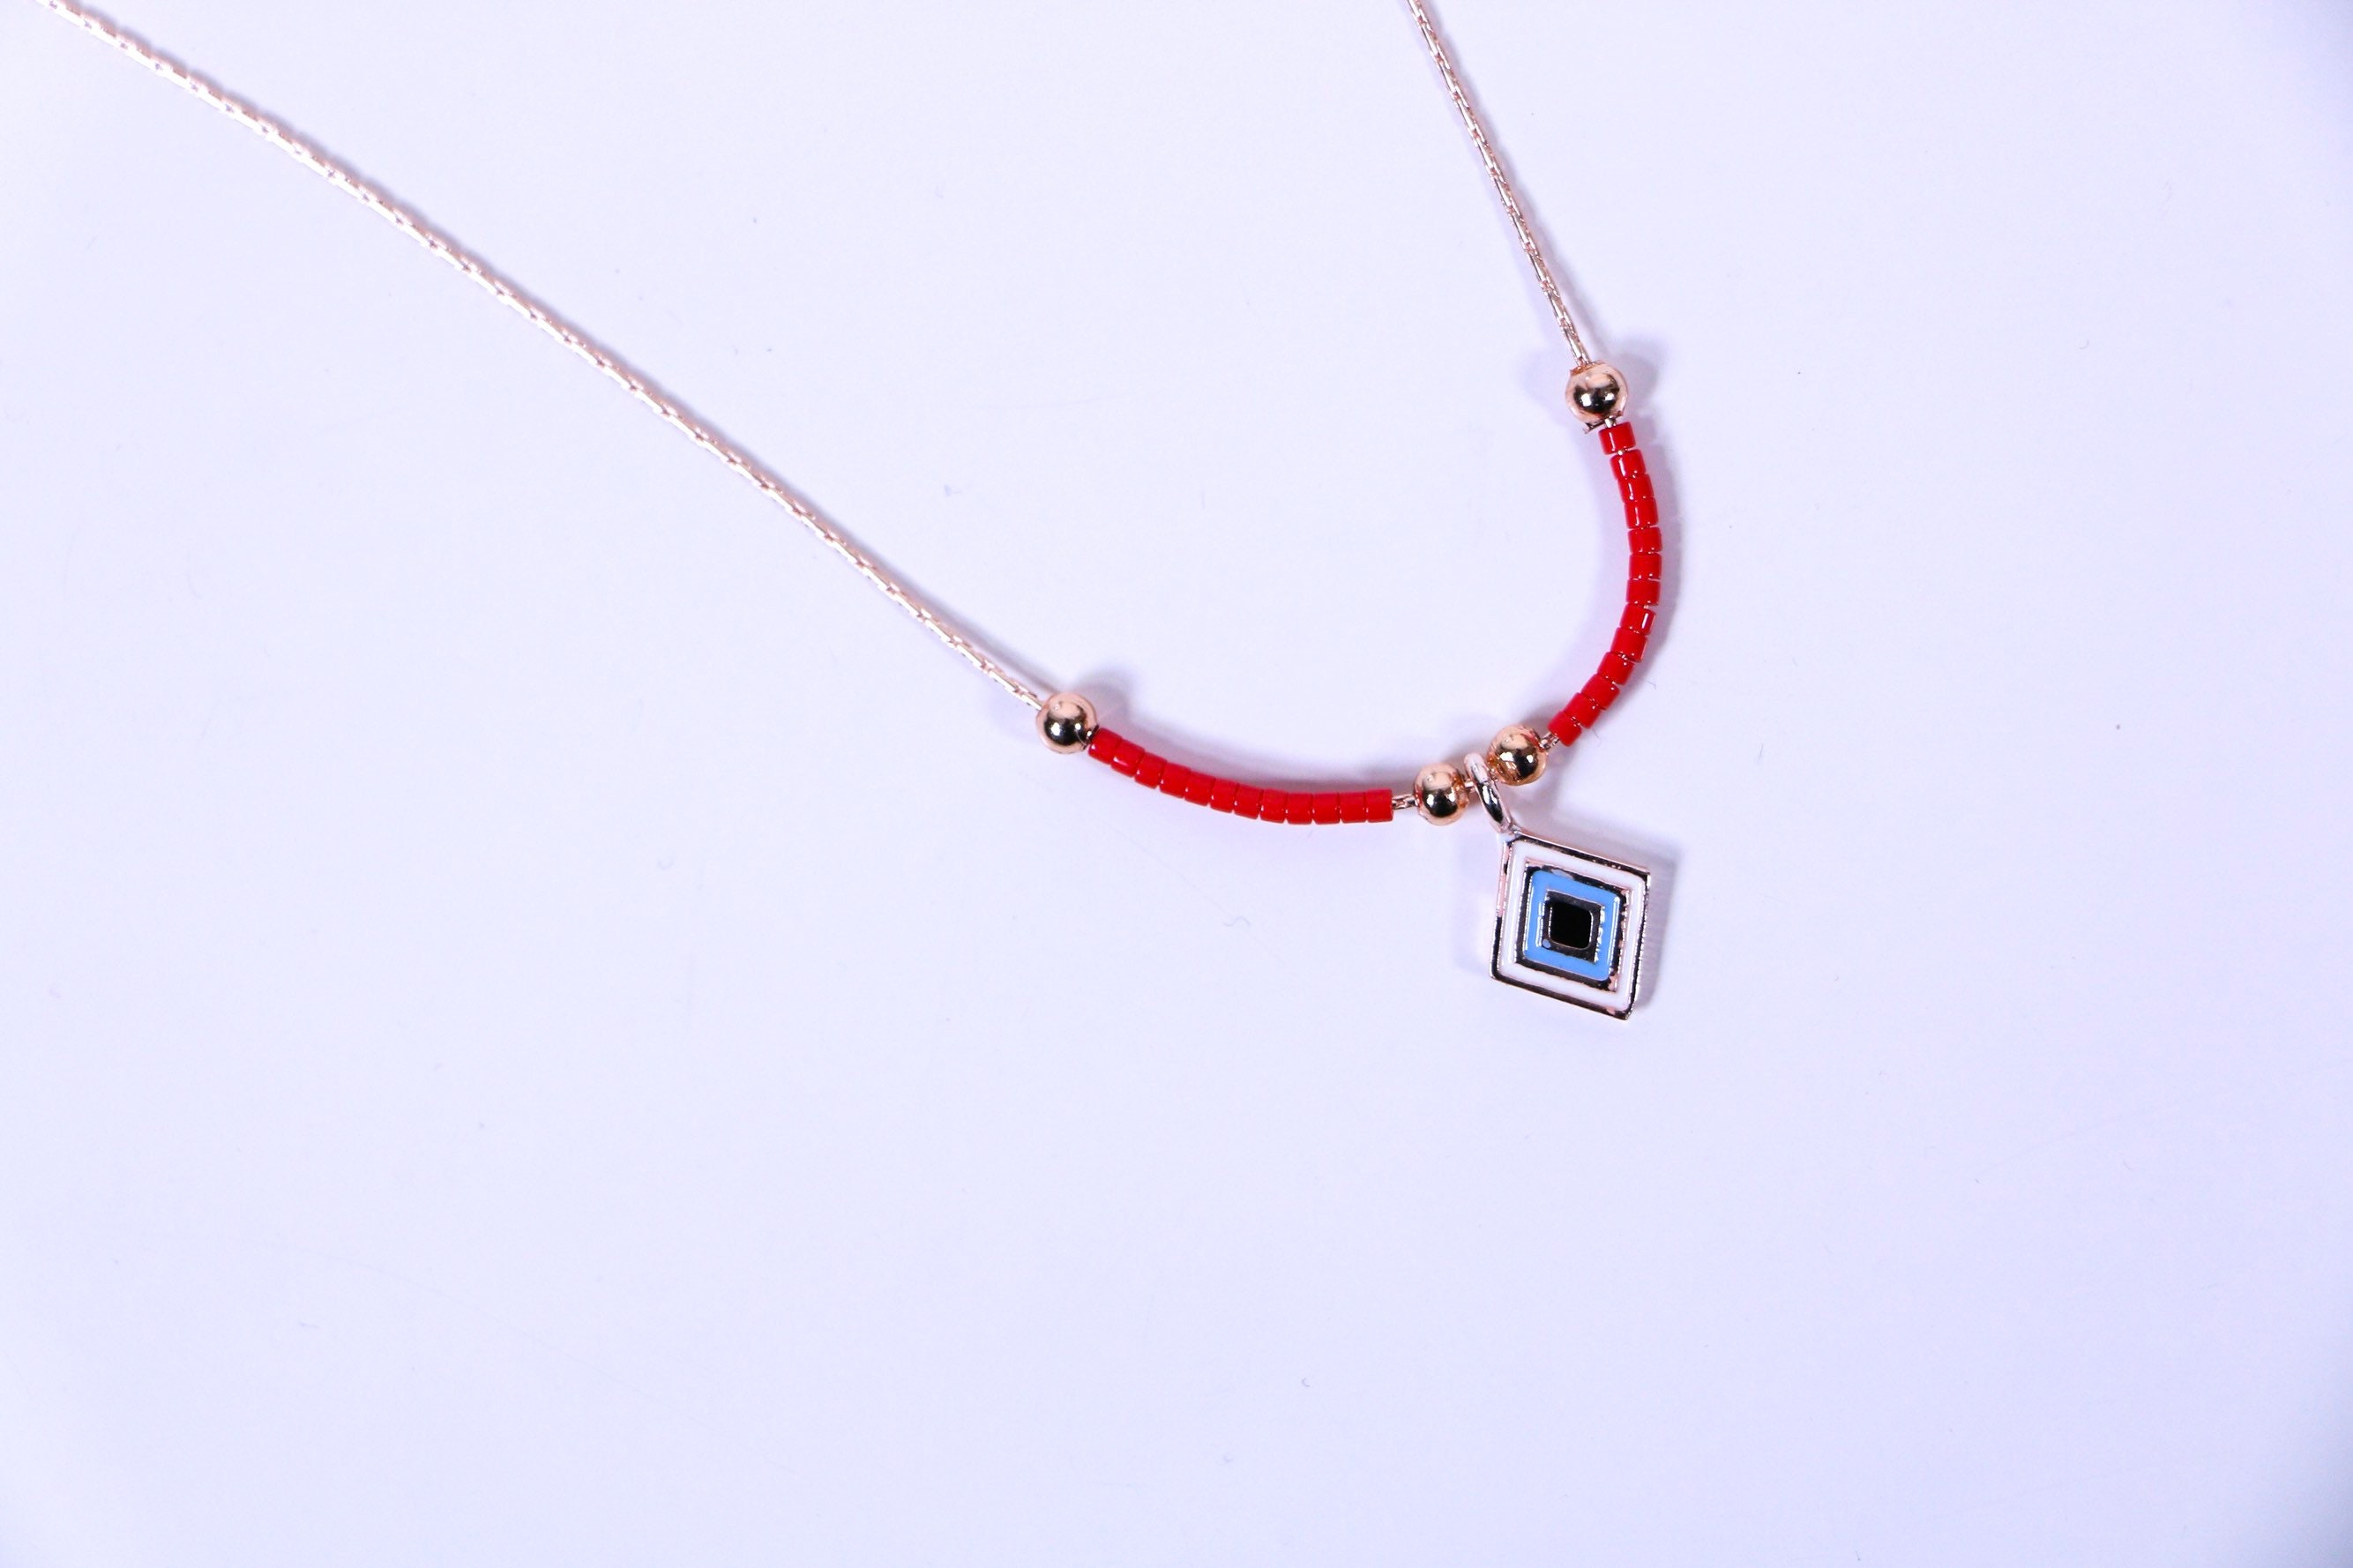 Devileye Necklace Necklace for Women Handmade Necklace Red  2d55b20df